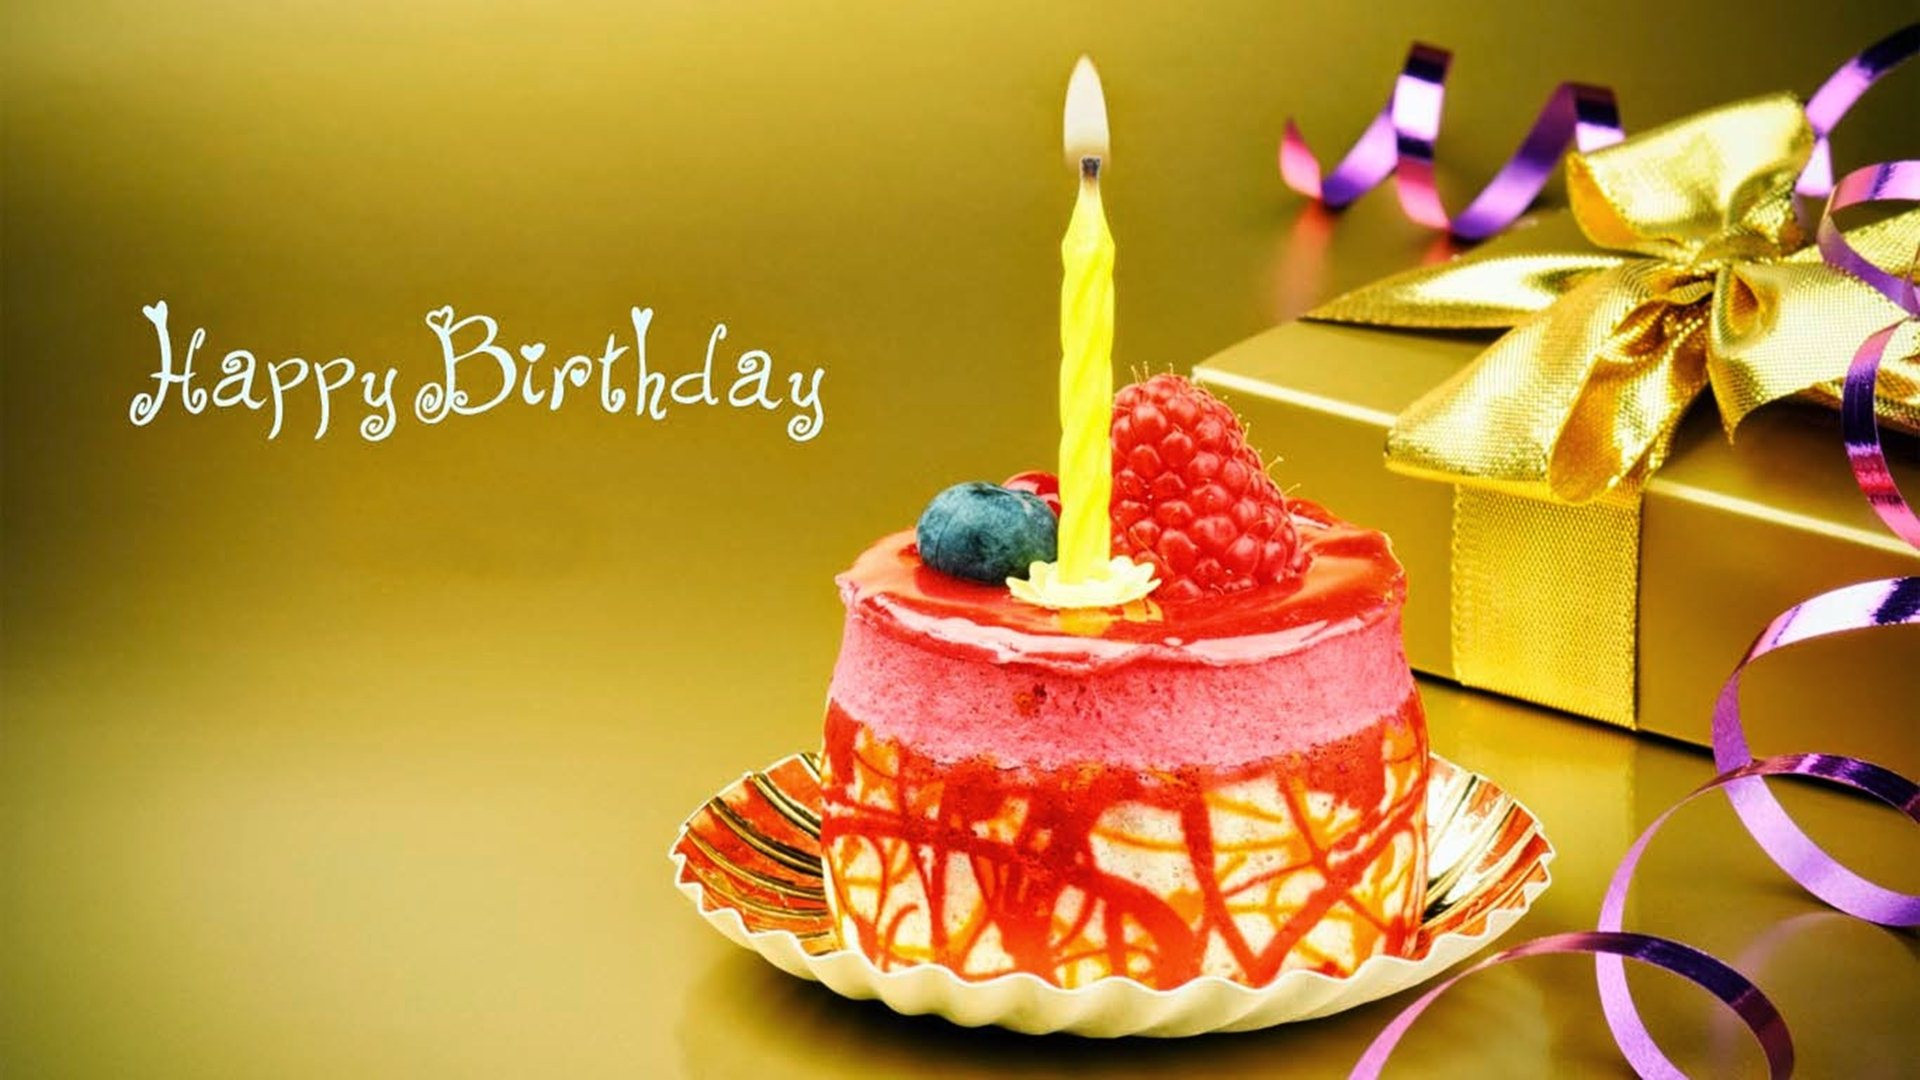 Best ideas about Images Of Birthday Wishes . Save or Pin birthday wishes images HD Now.